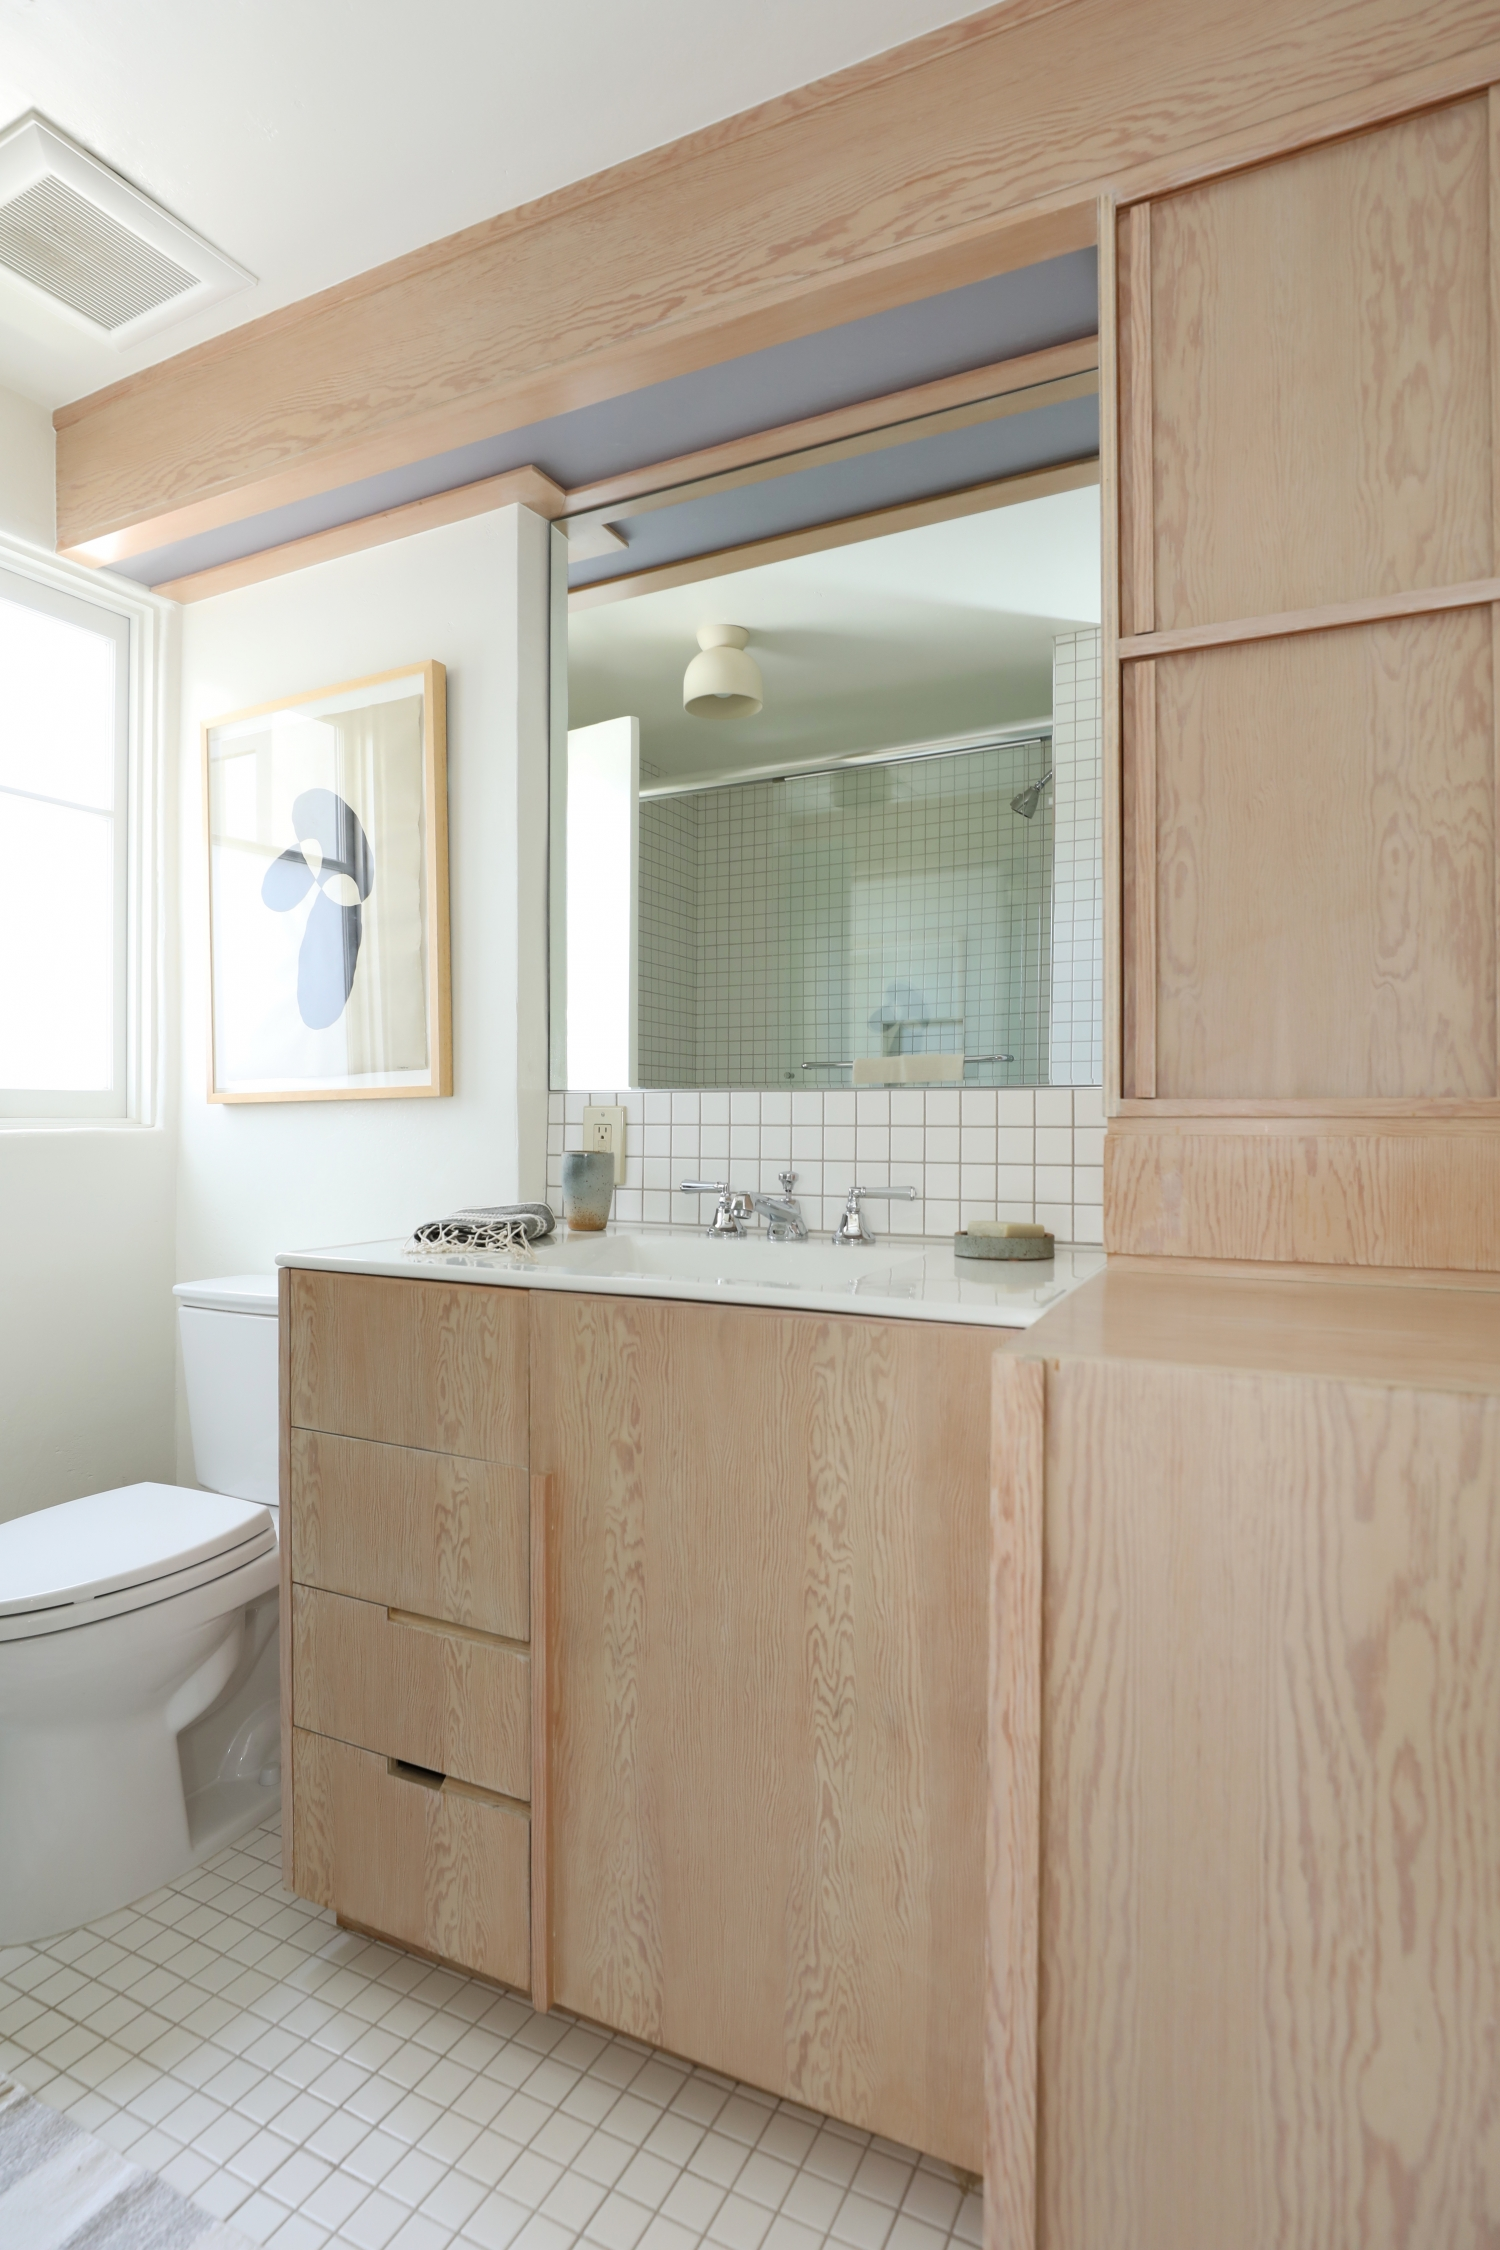 The bathroom in the Maid's Room at Manola Court.